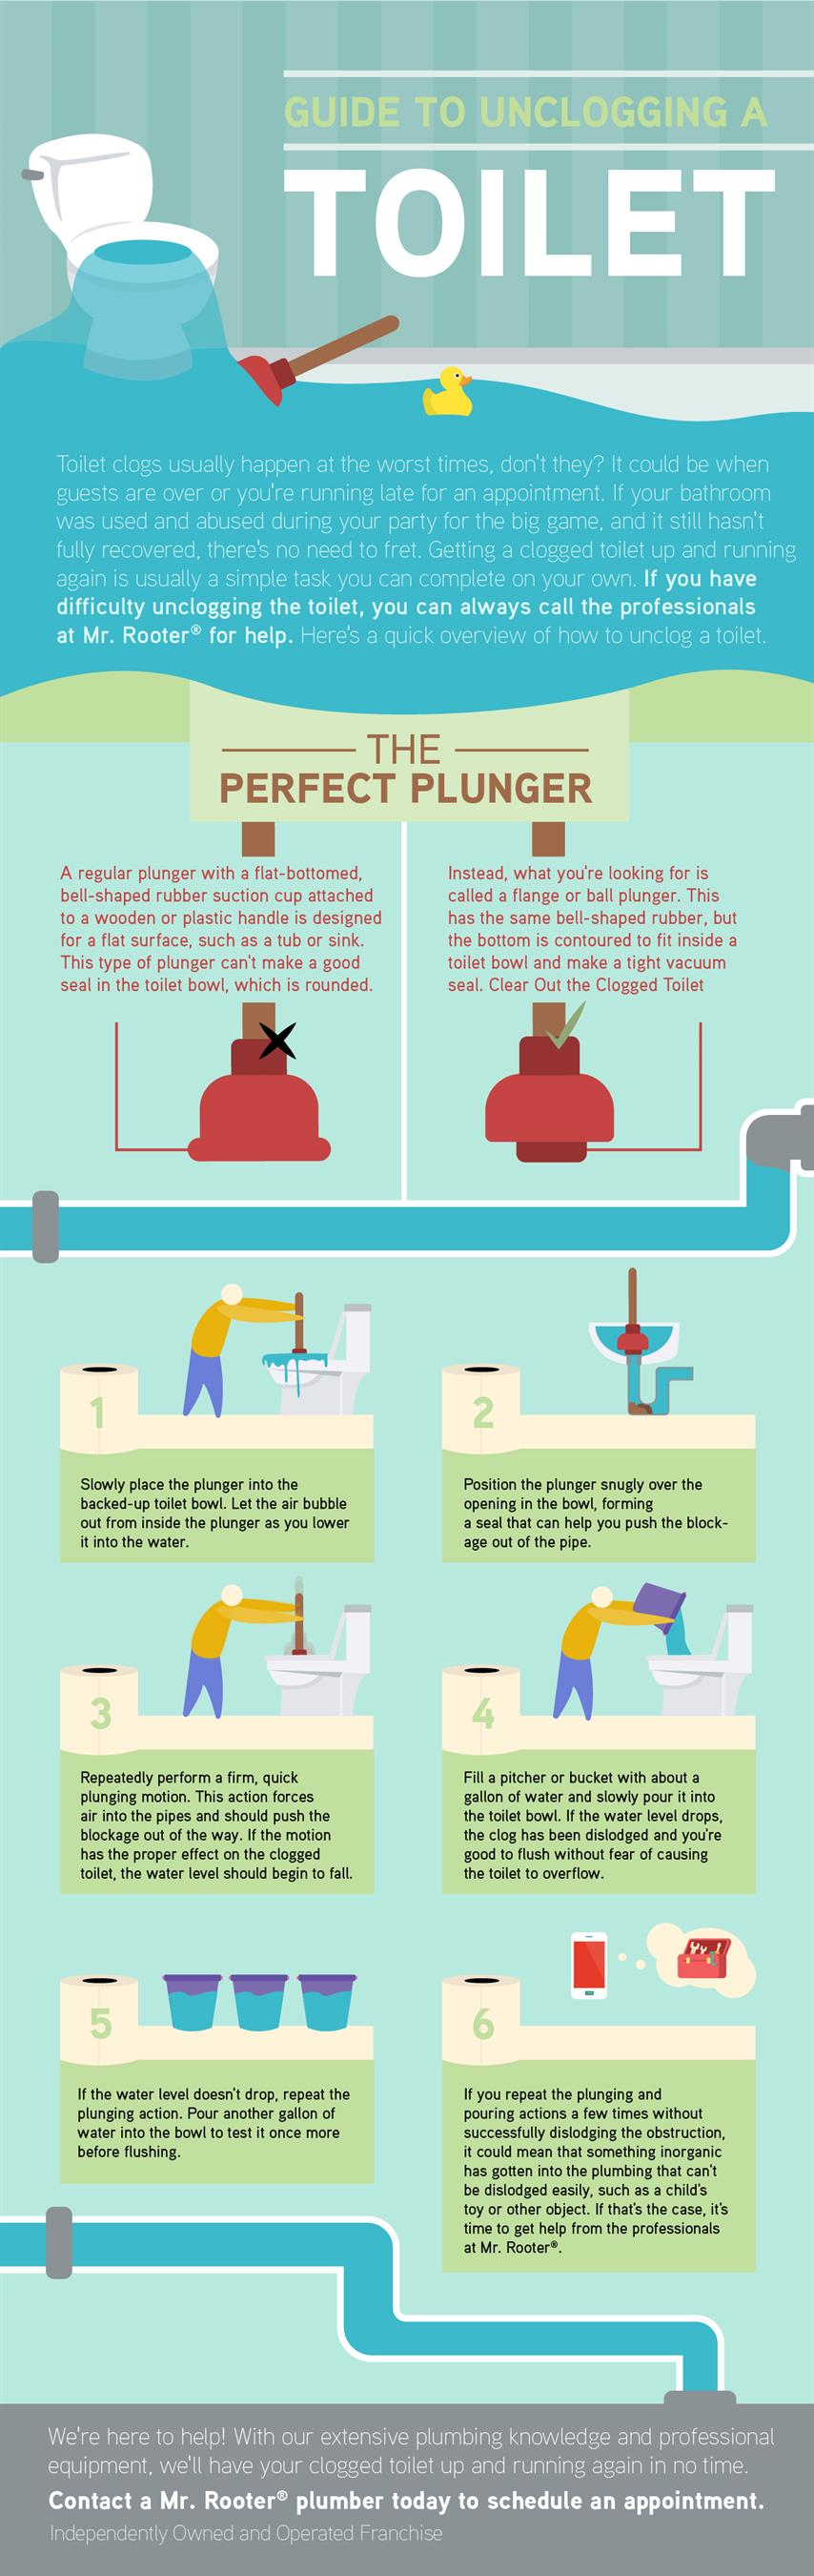 Guide to unclogging a toilet infographic